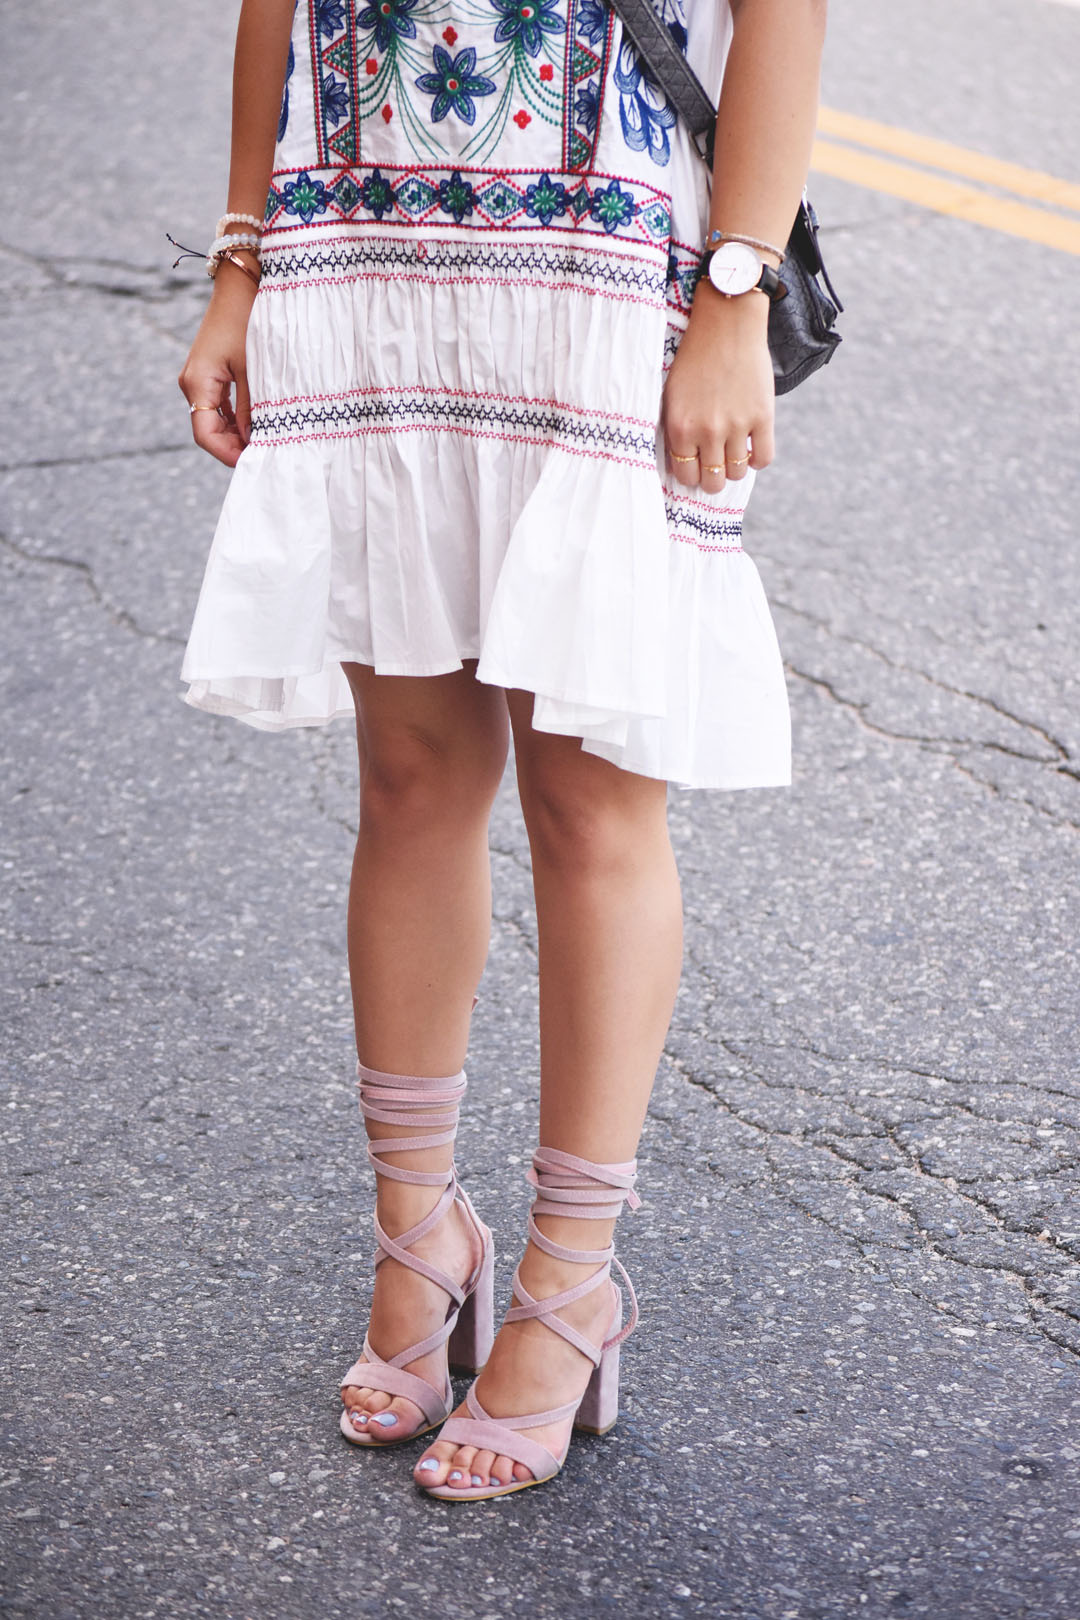 Chicwish white dress with floral and aztec embroidery, Daniel Wellington brown watch and Public Desire pink lace up sandals